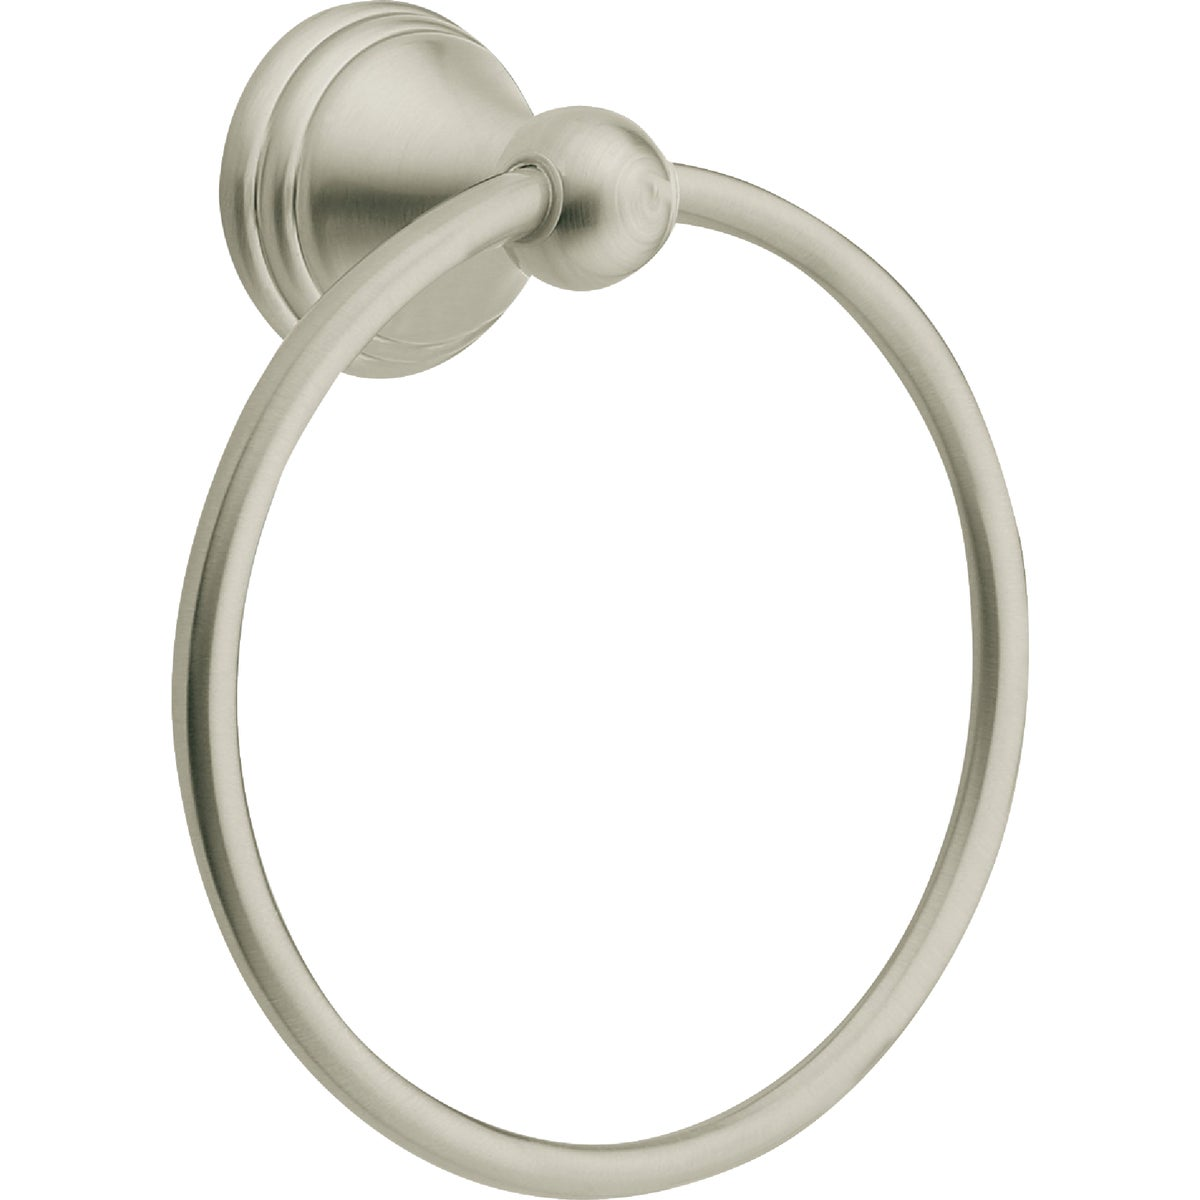 BN PRESTON TOWEL RING - DN8486BN by C S I Donner